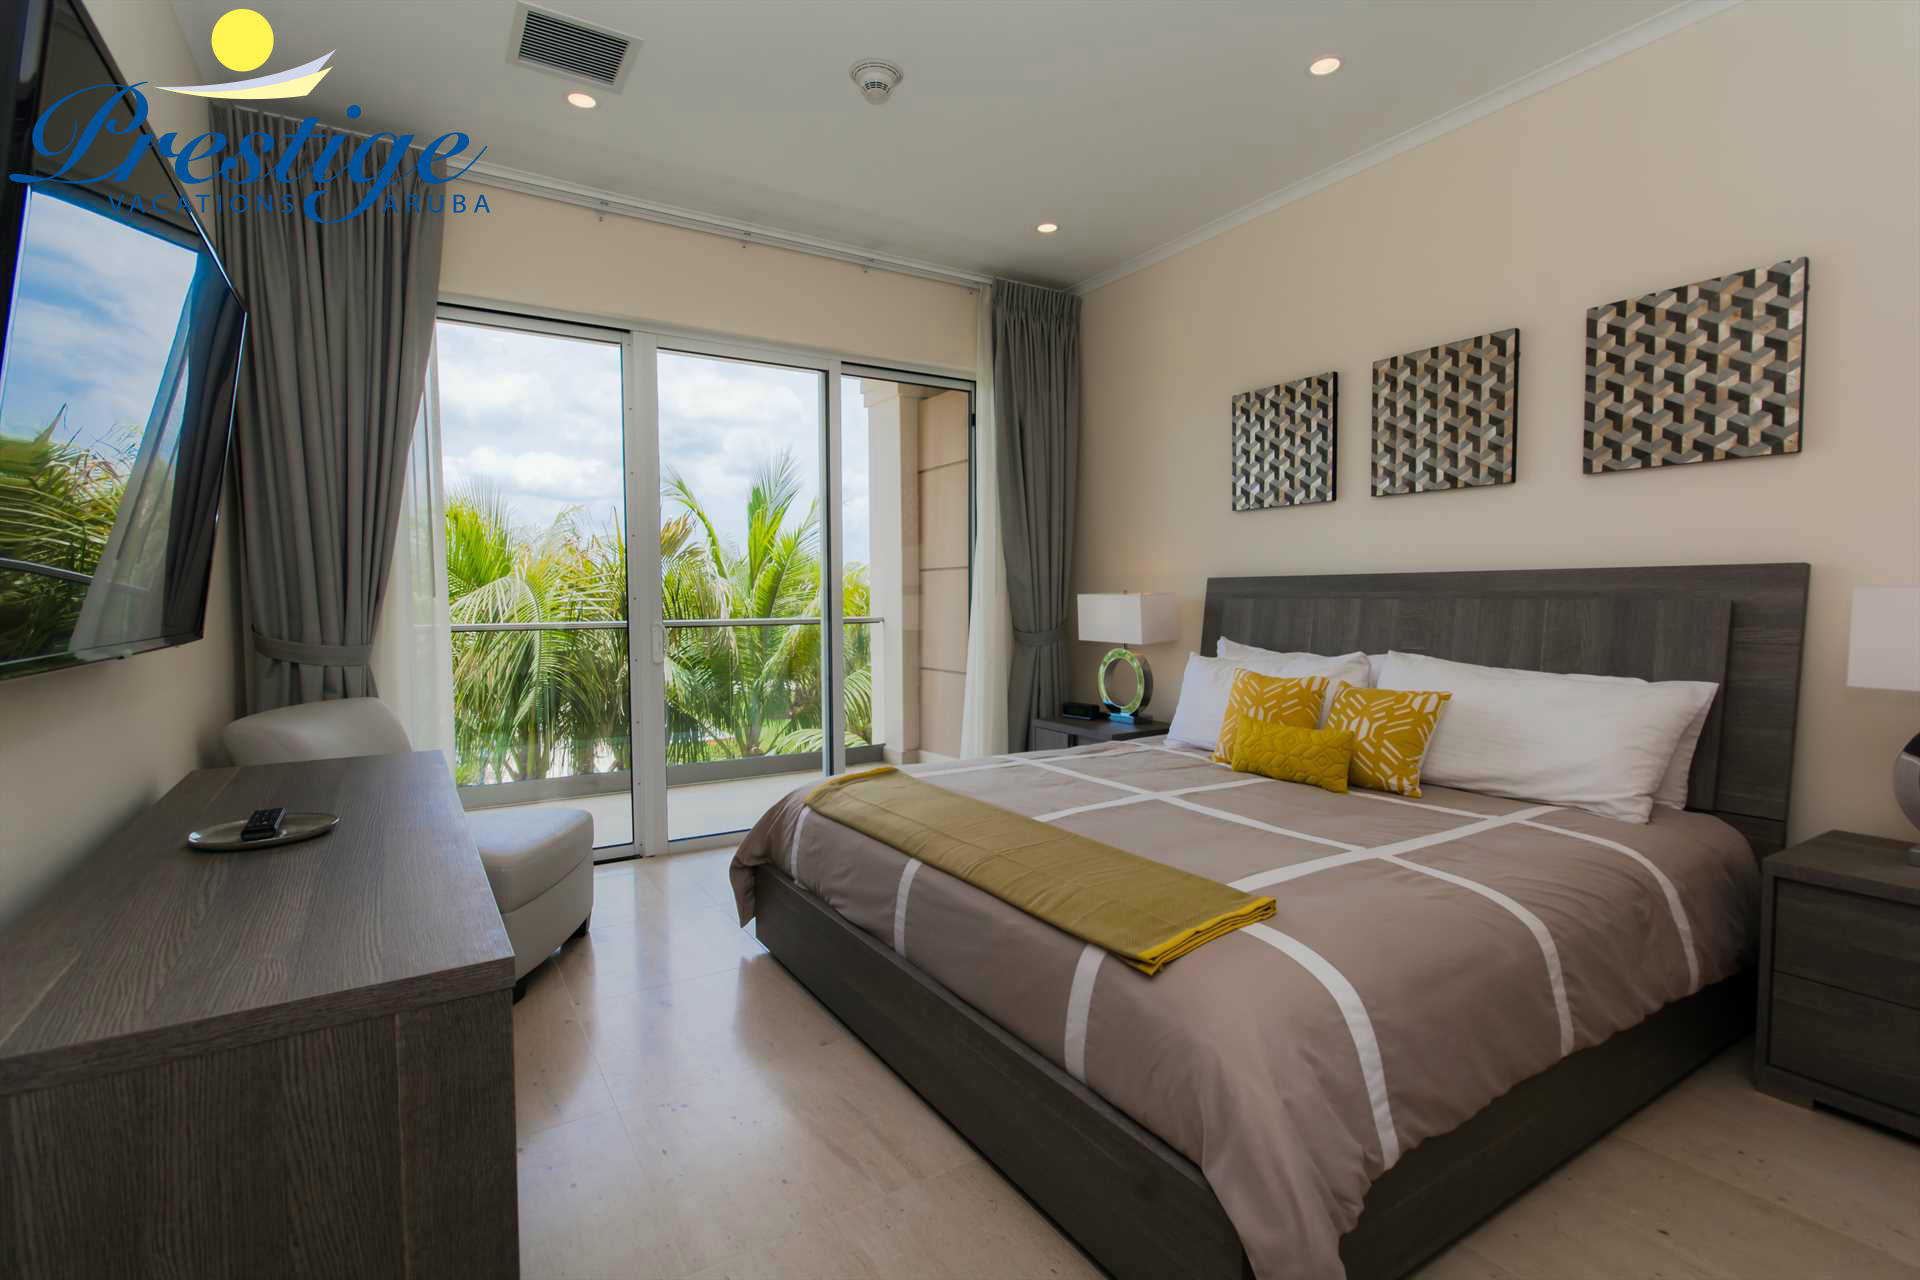 Master bedroom with king-size bed and access to balcony